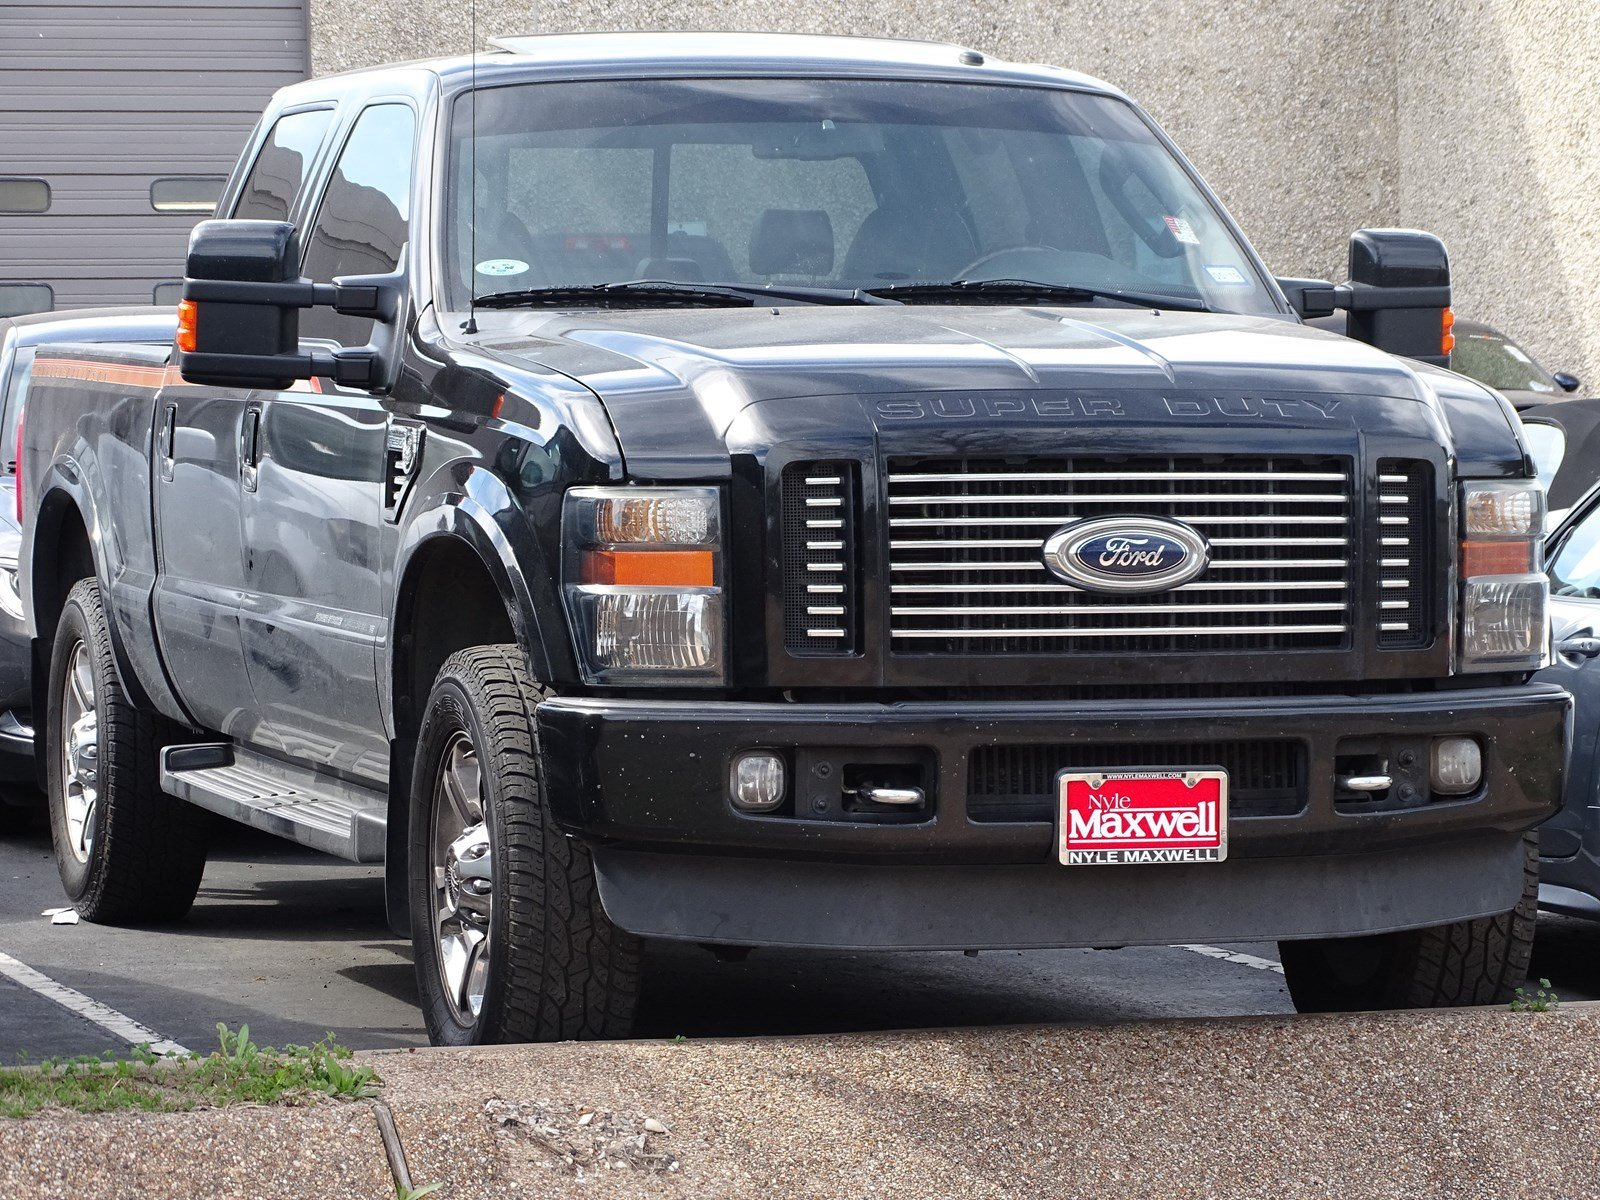 Pre-Owned 2008 Ford Super Duty F-250 SRW Harley-Davidson